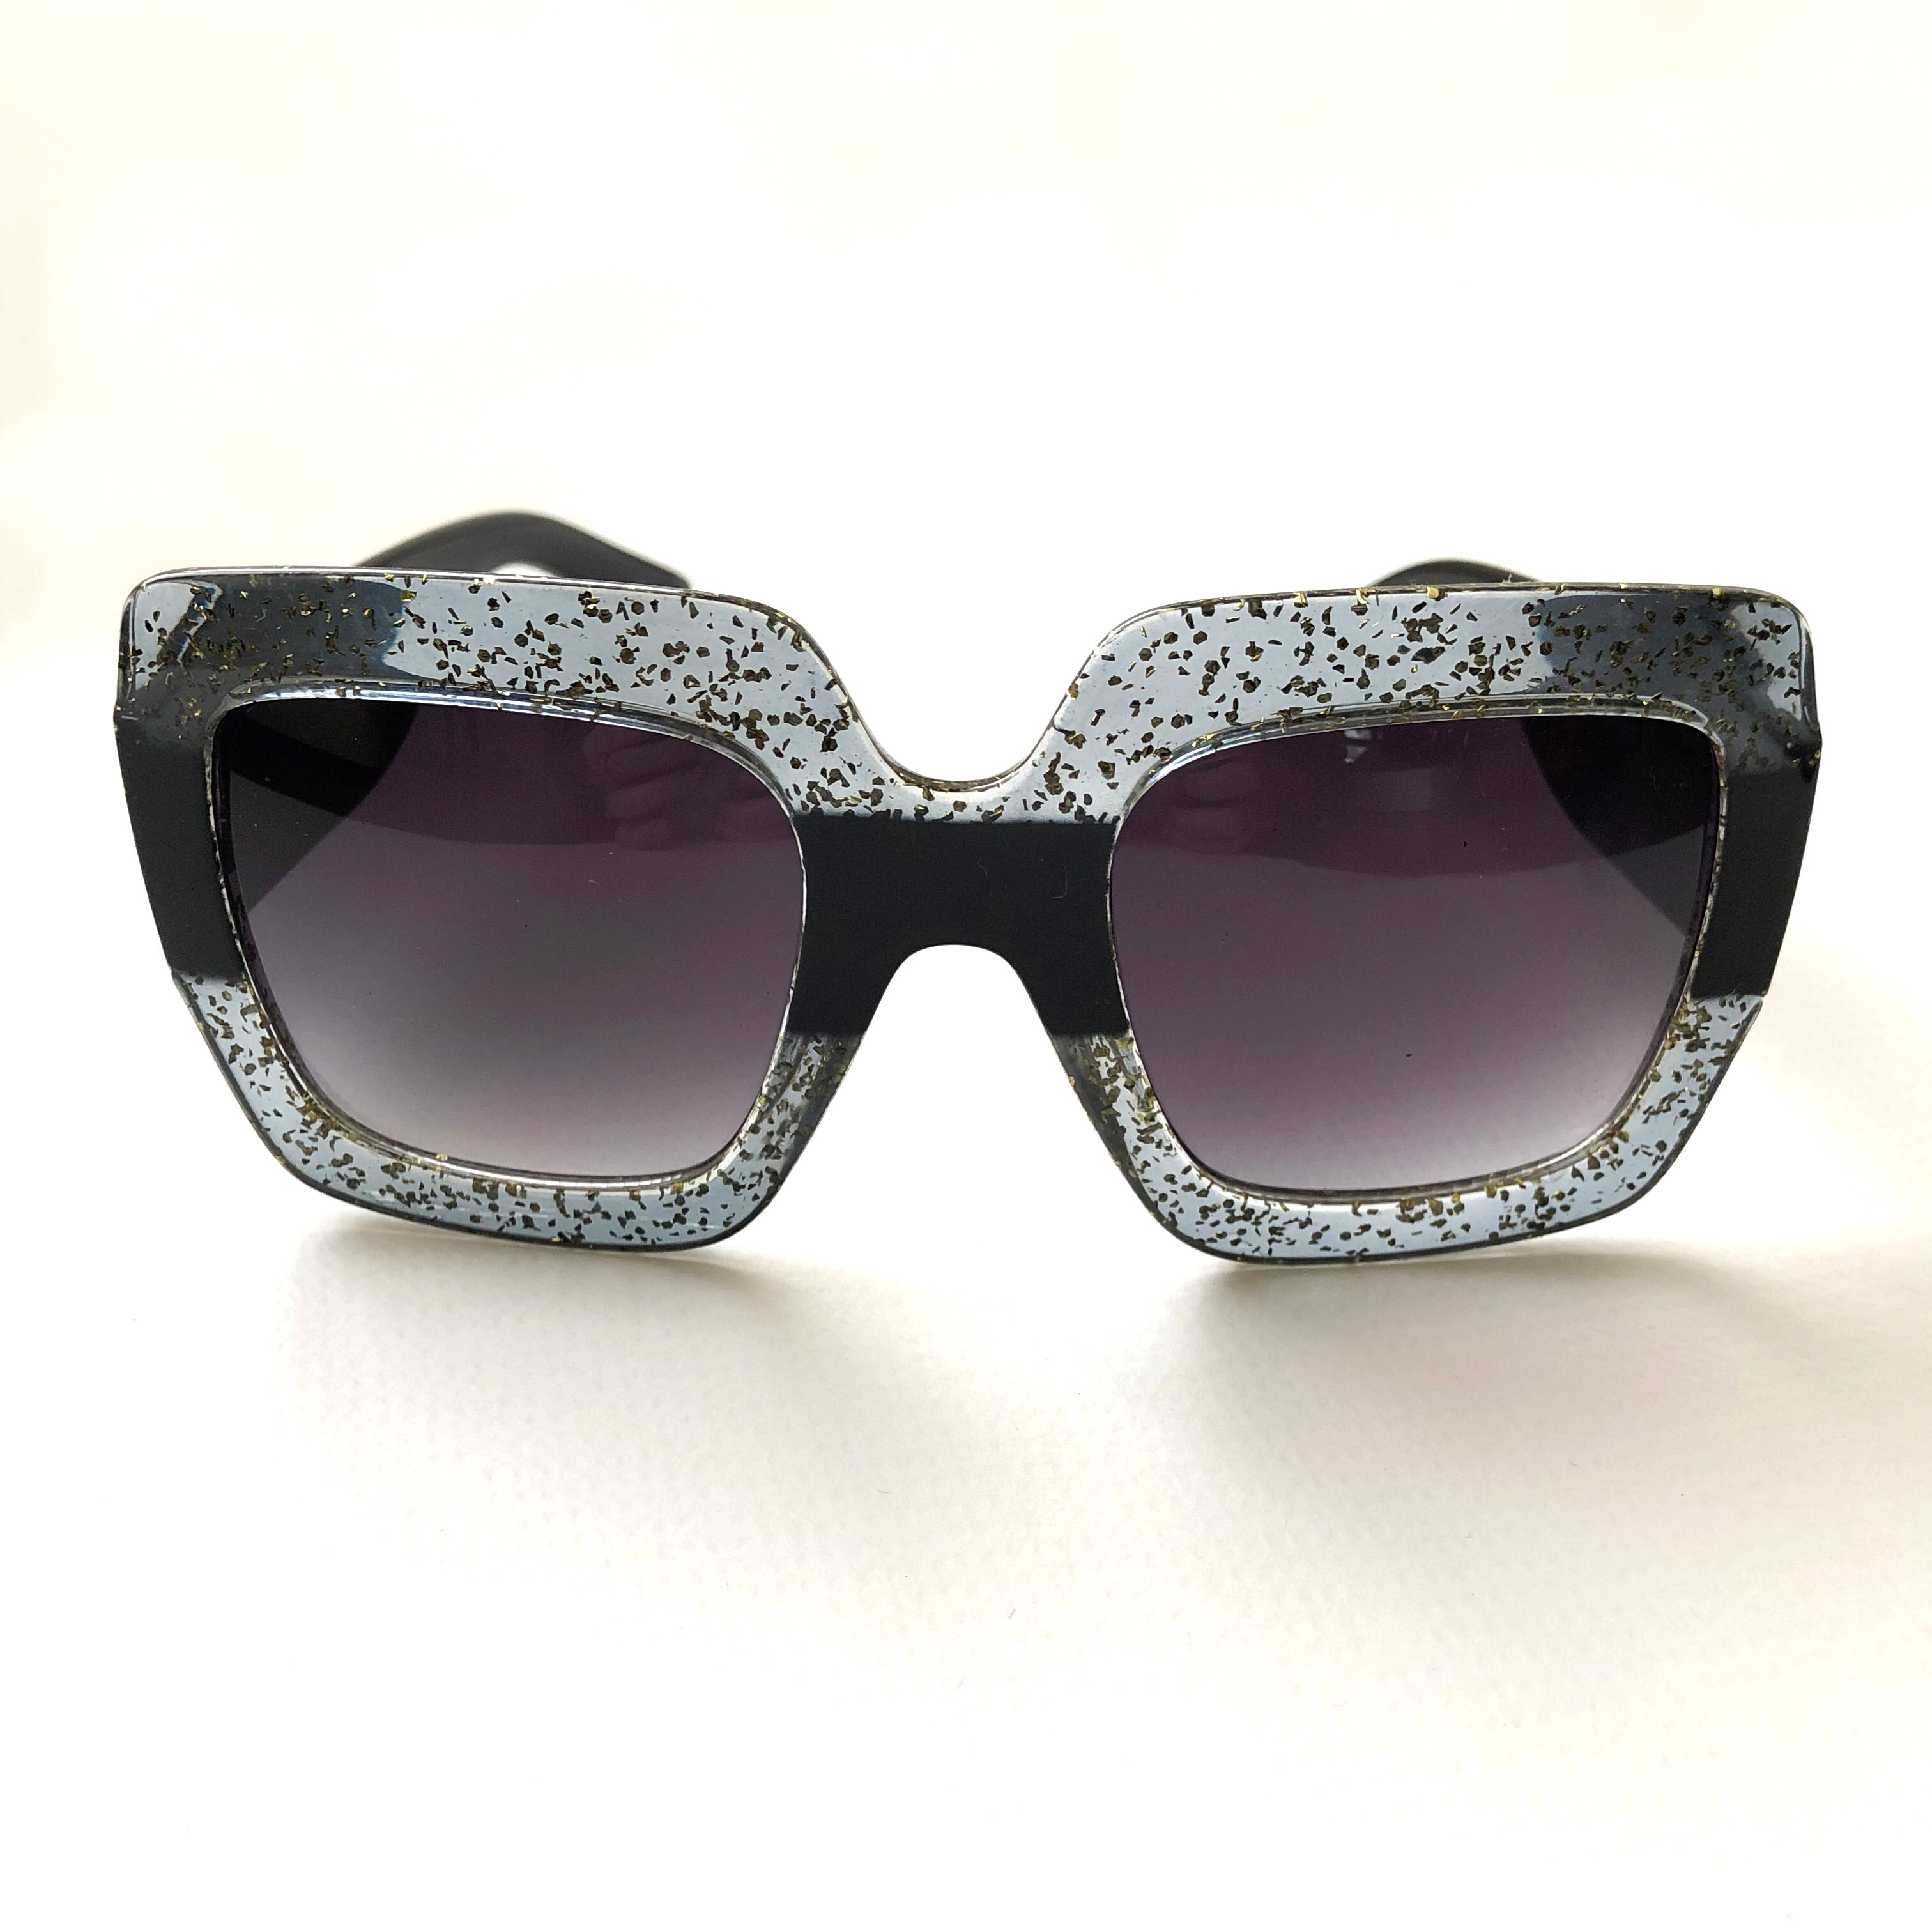 Clear and glitter and black sunglasses